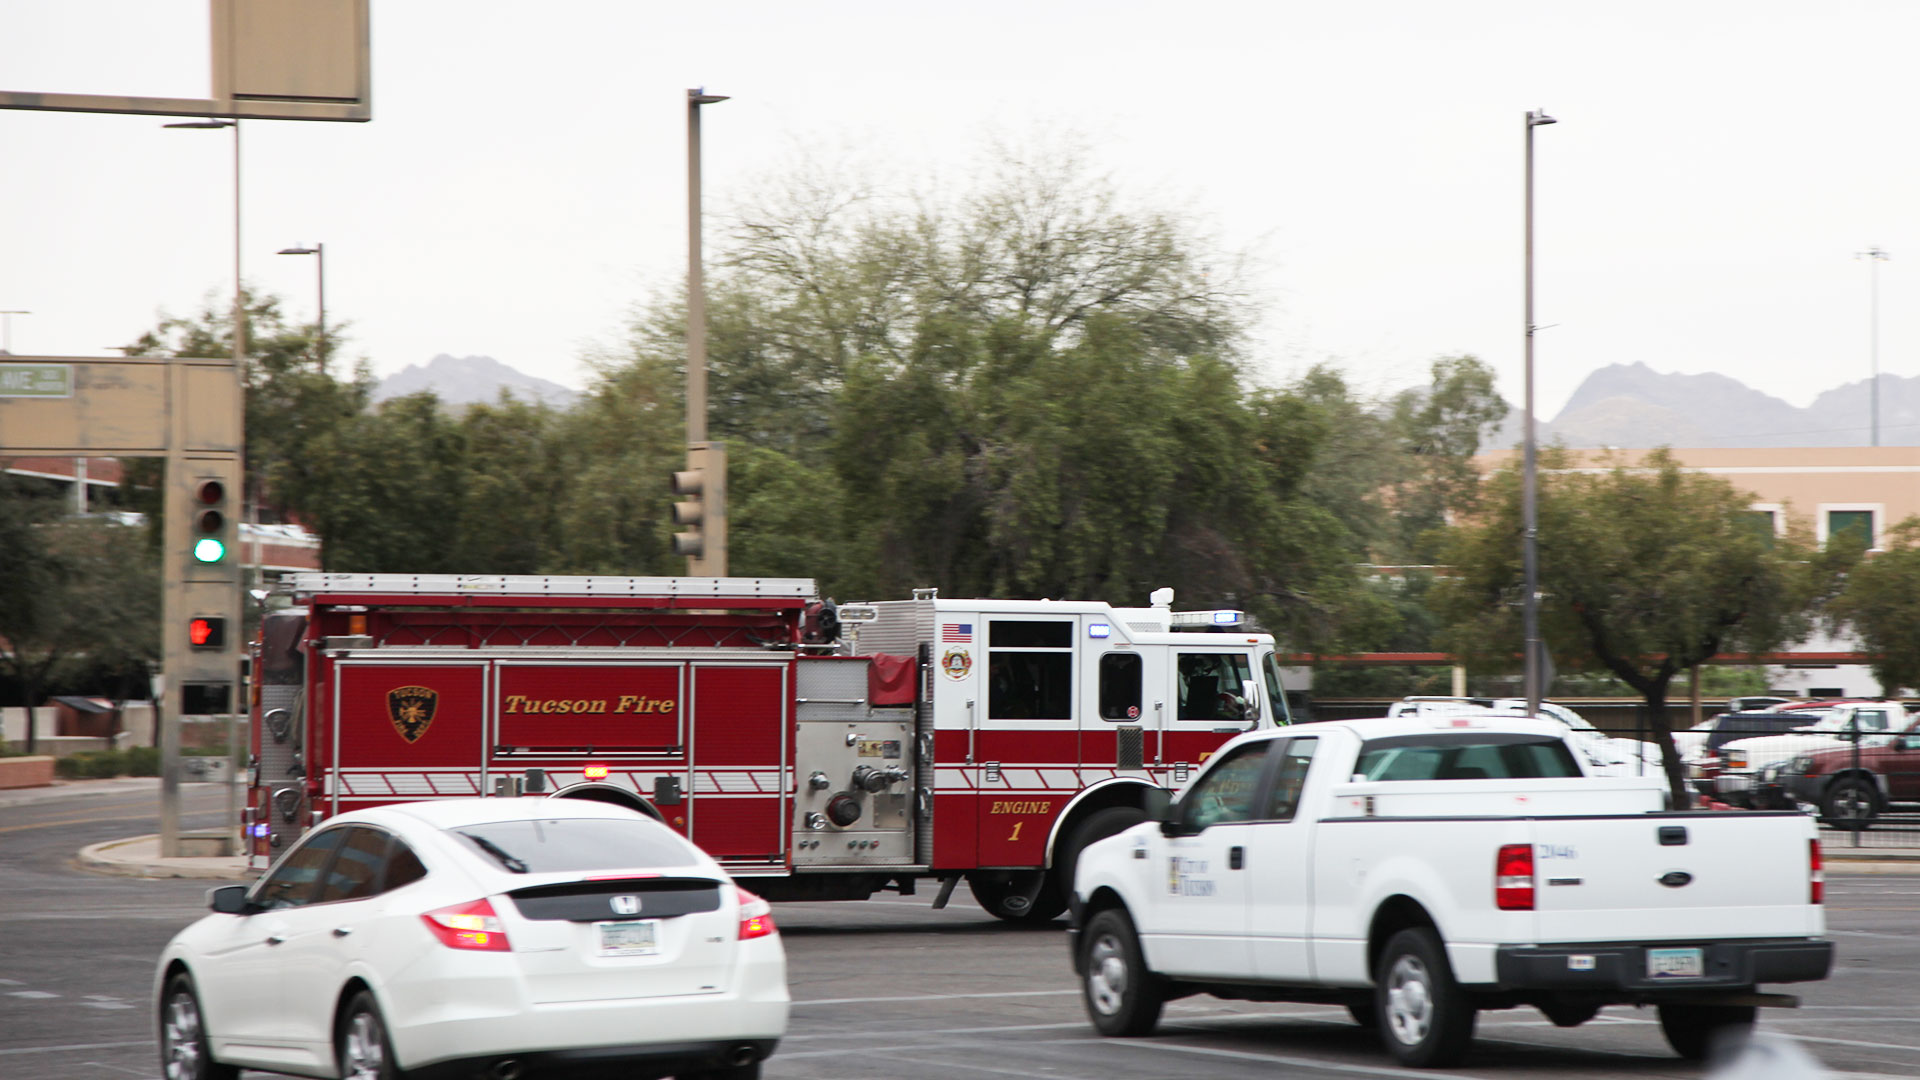 Tucson Fire Department responding to a call in downtown Tucson.